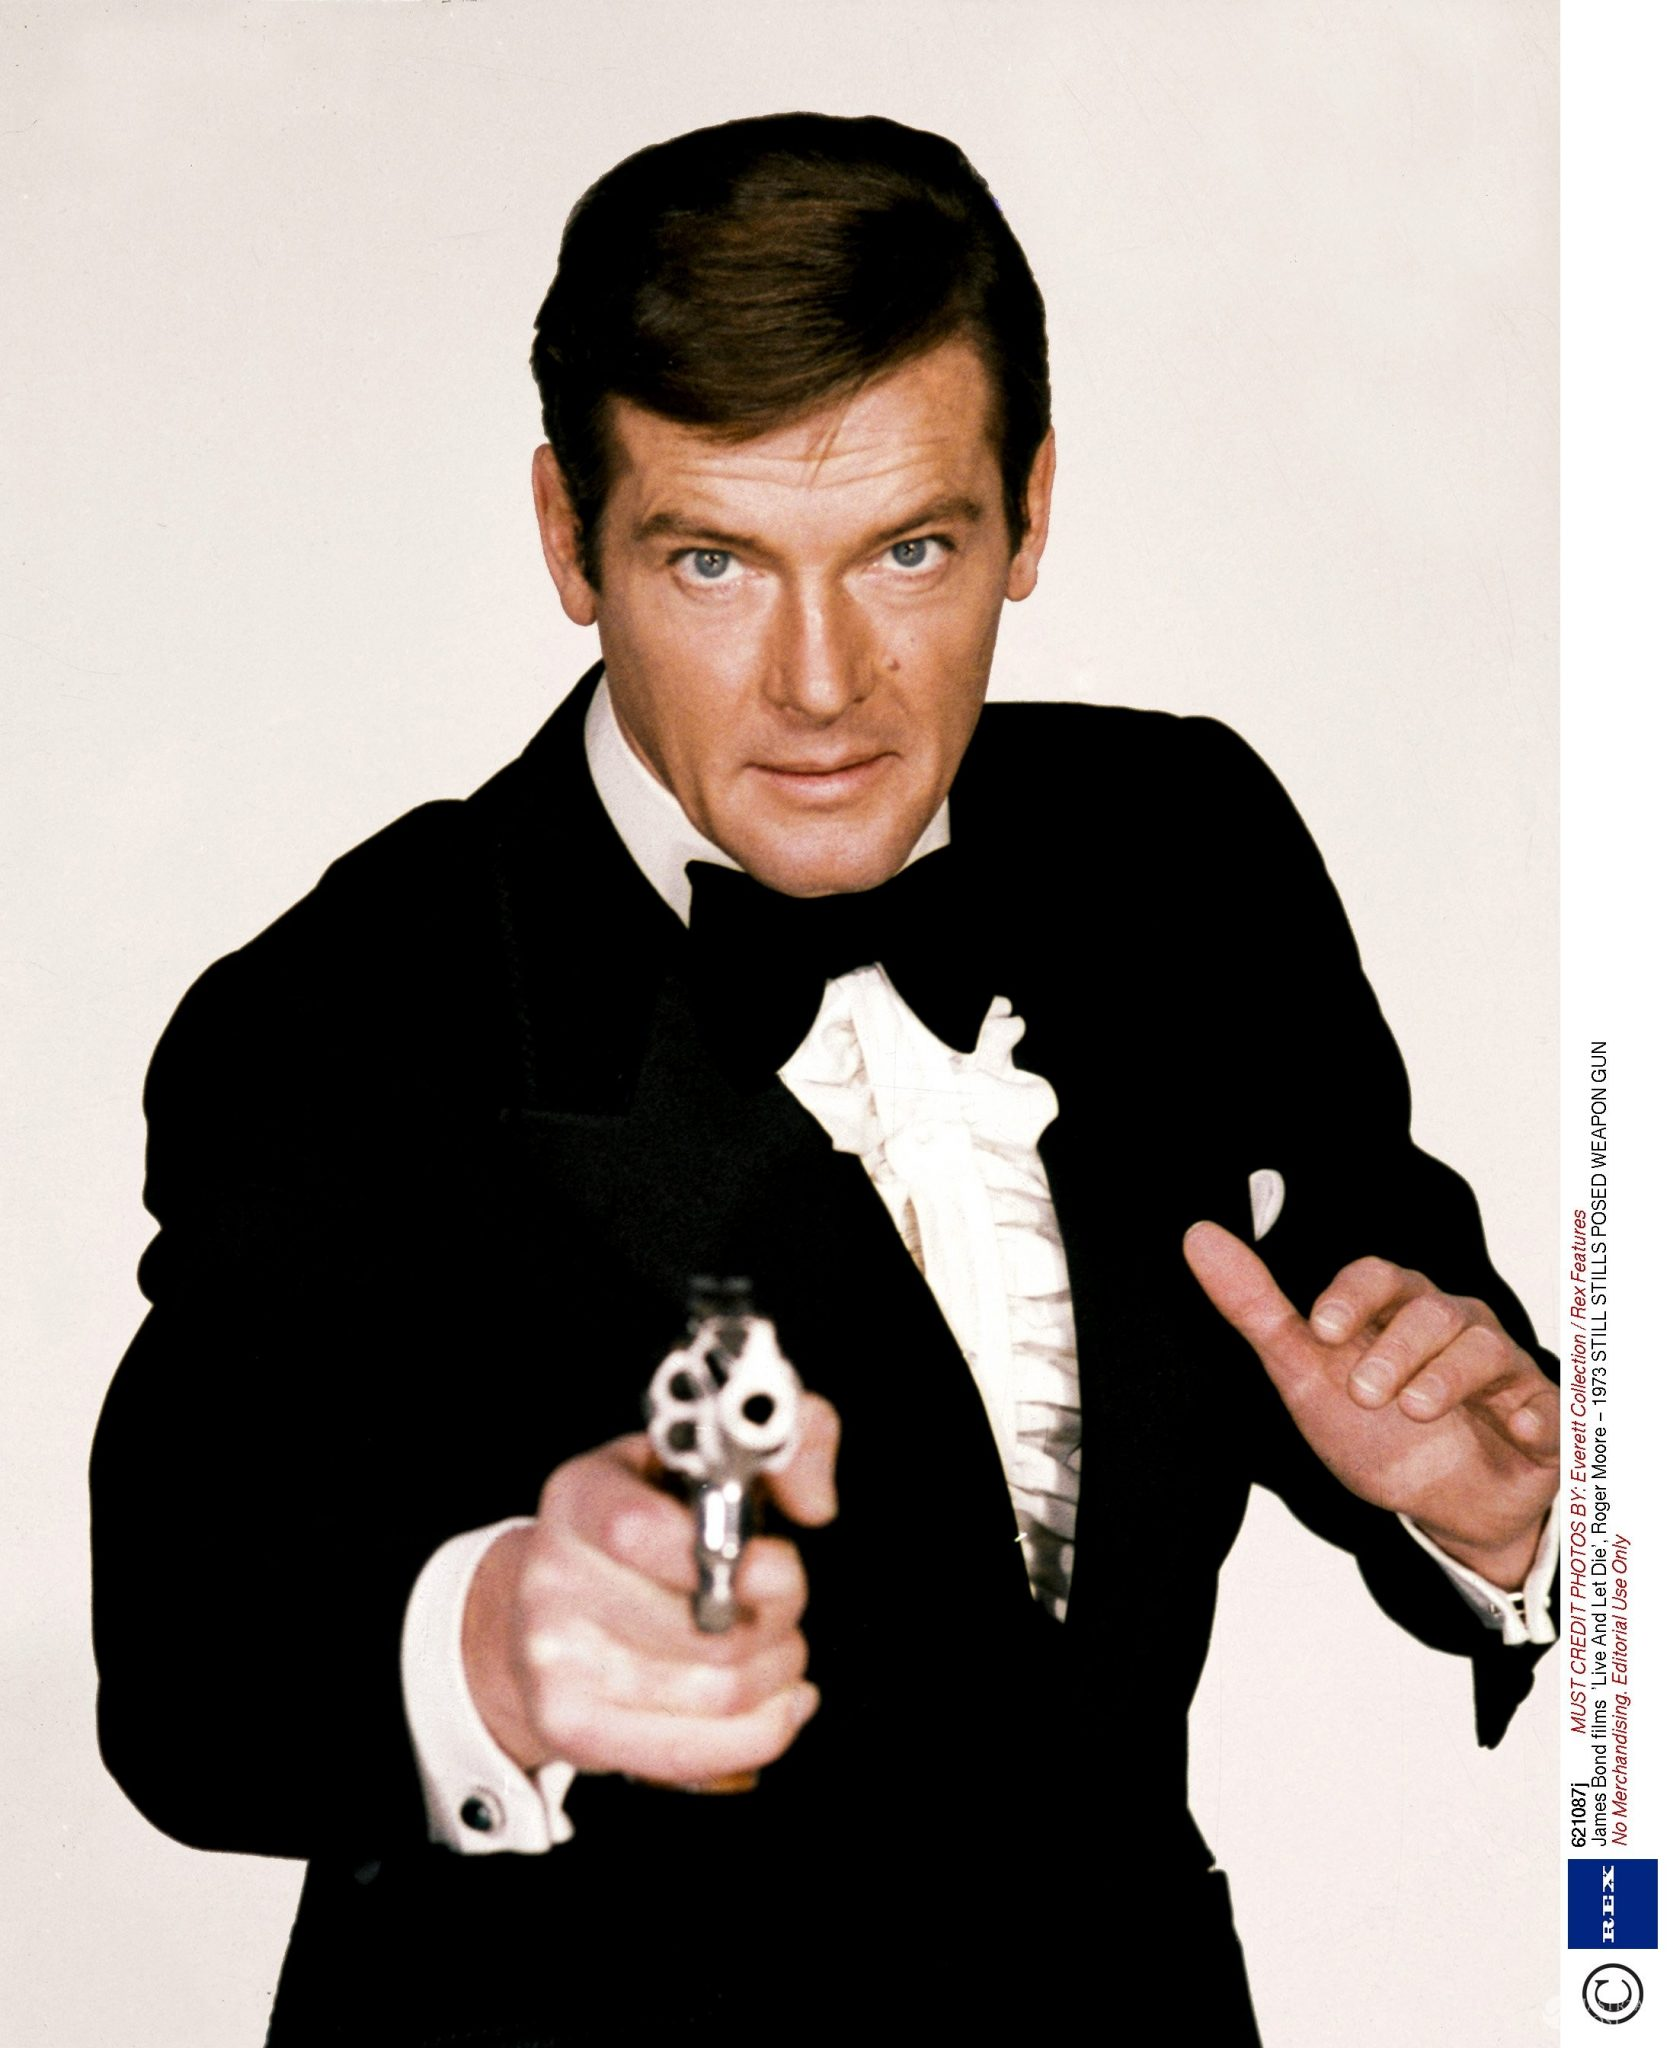 Nie żyje James Bond - Roger Moore